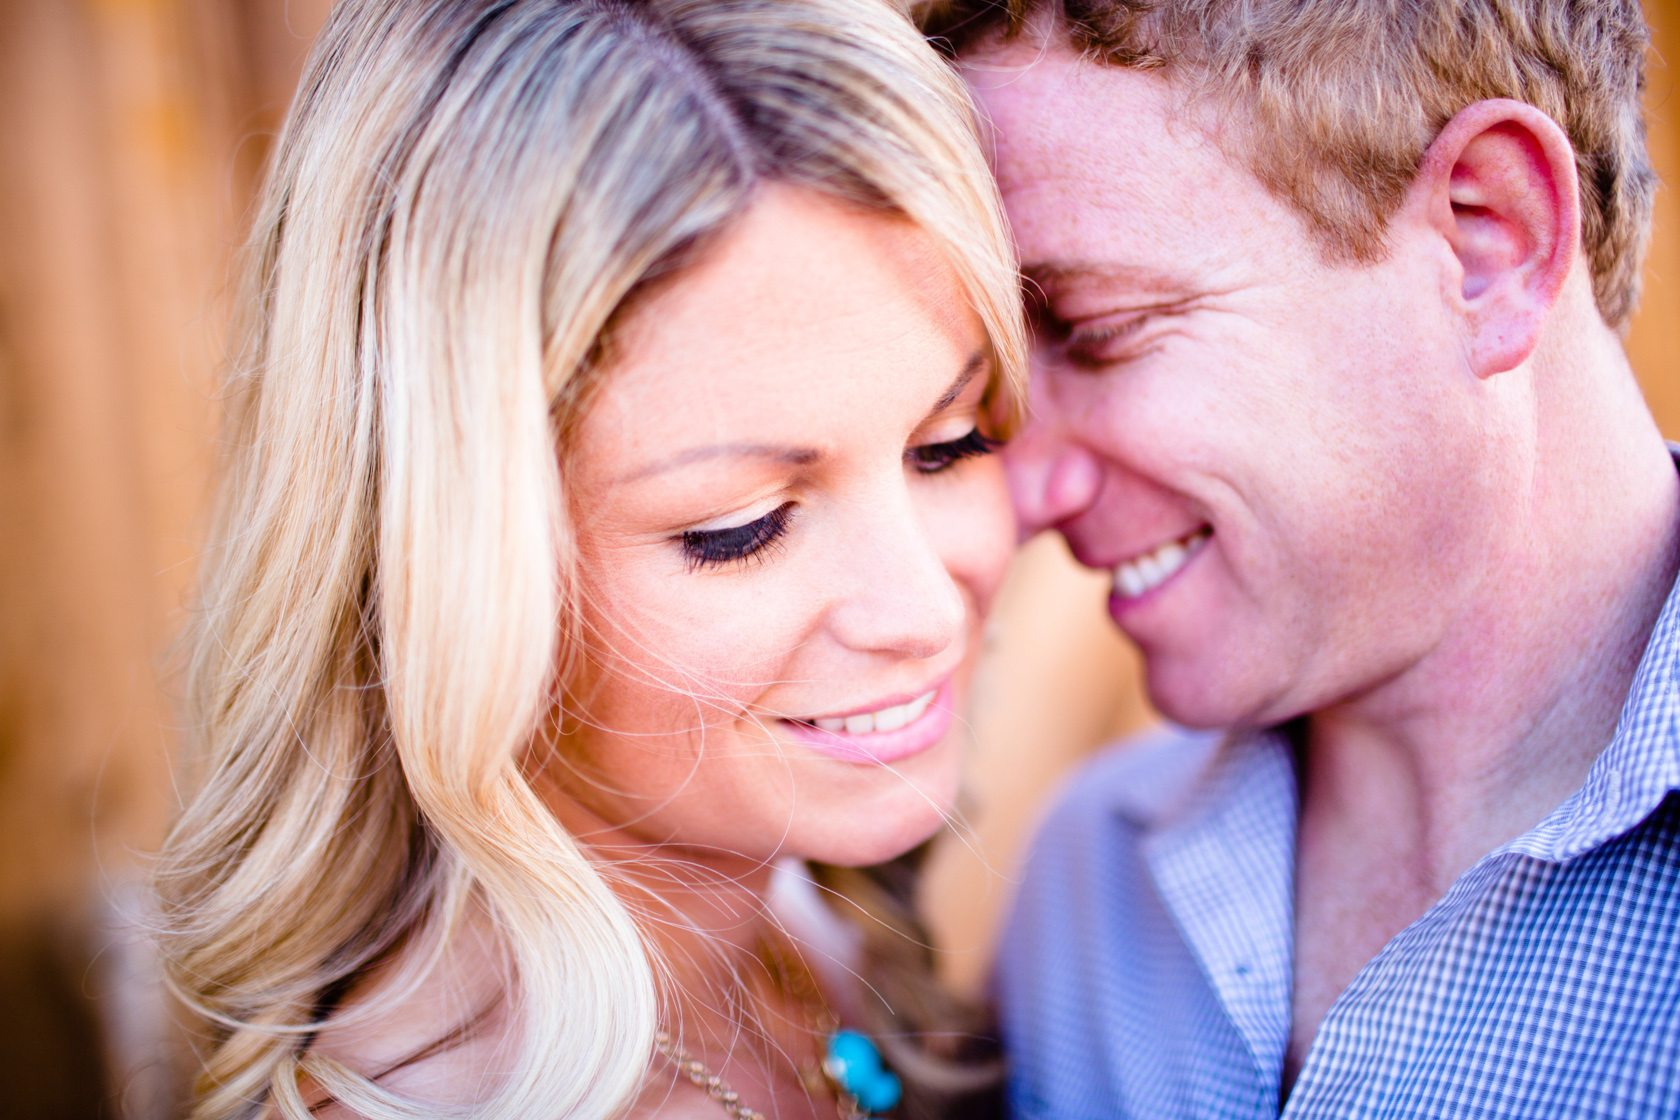 Julian_Farm_Engagement_04.jpg